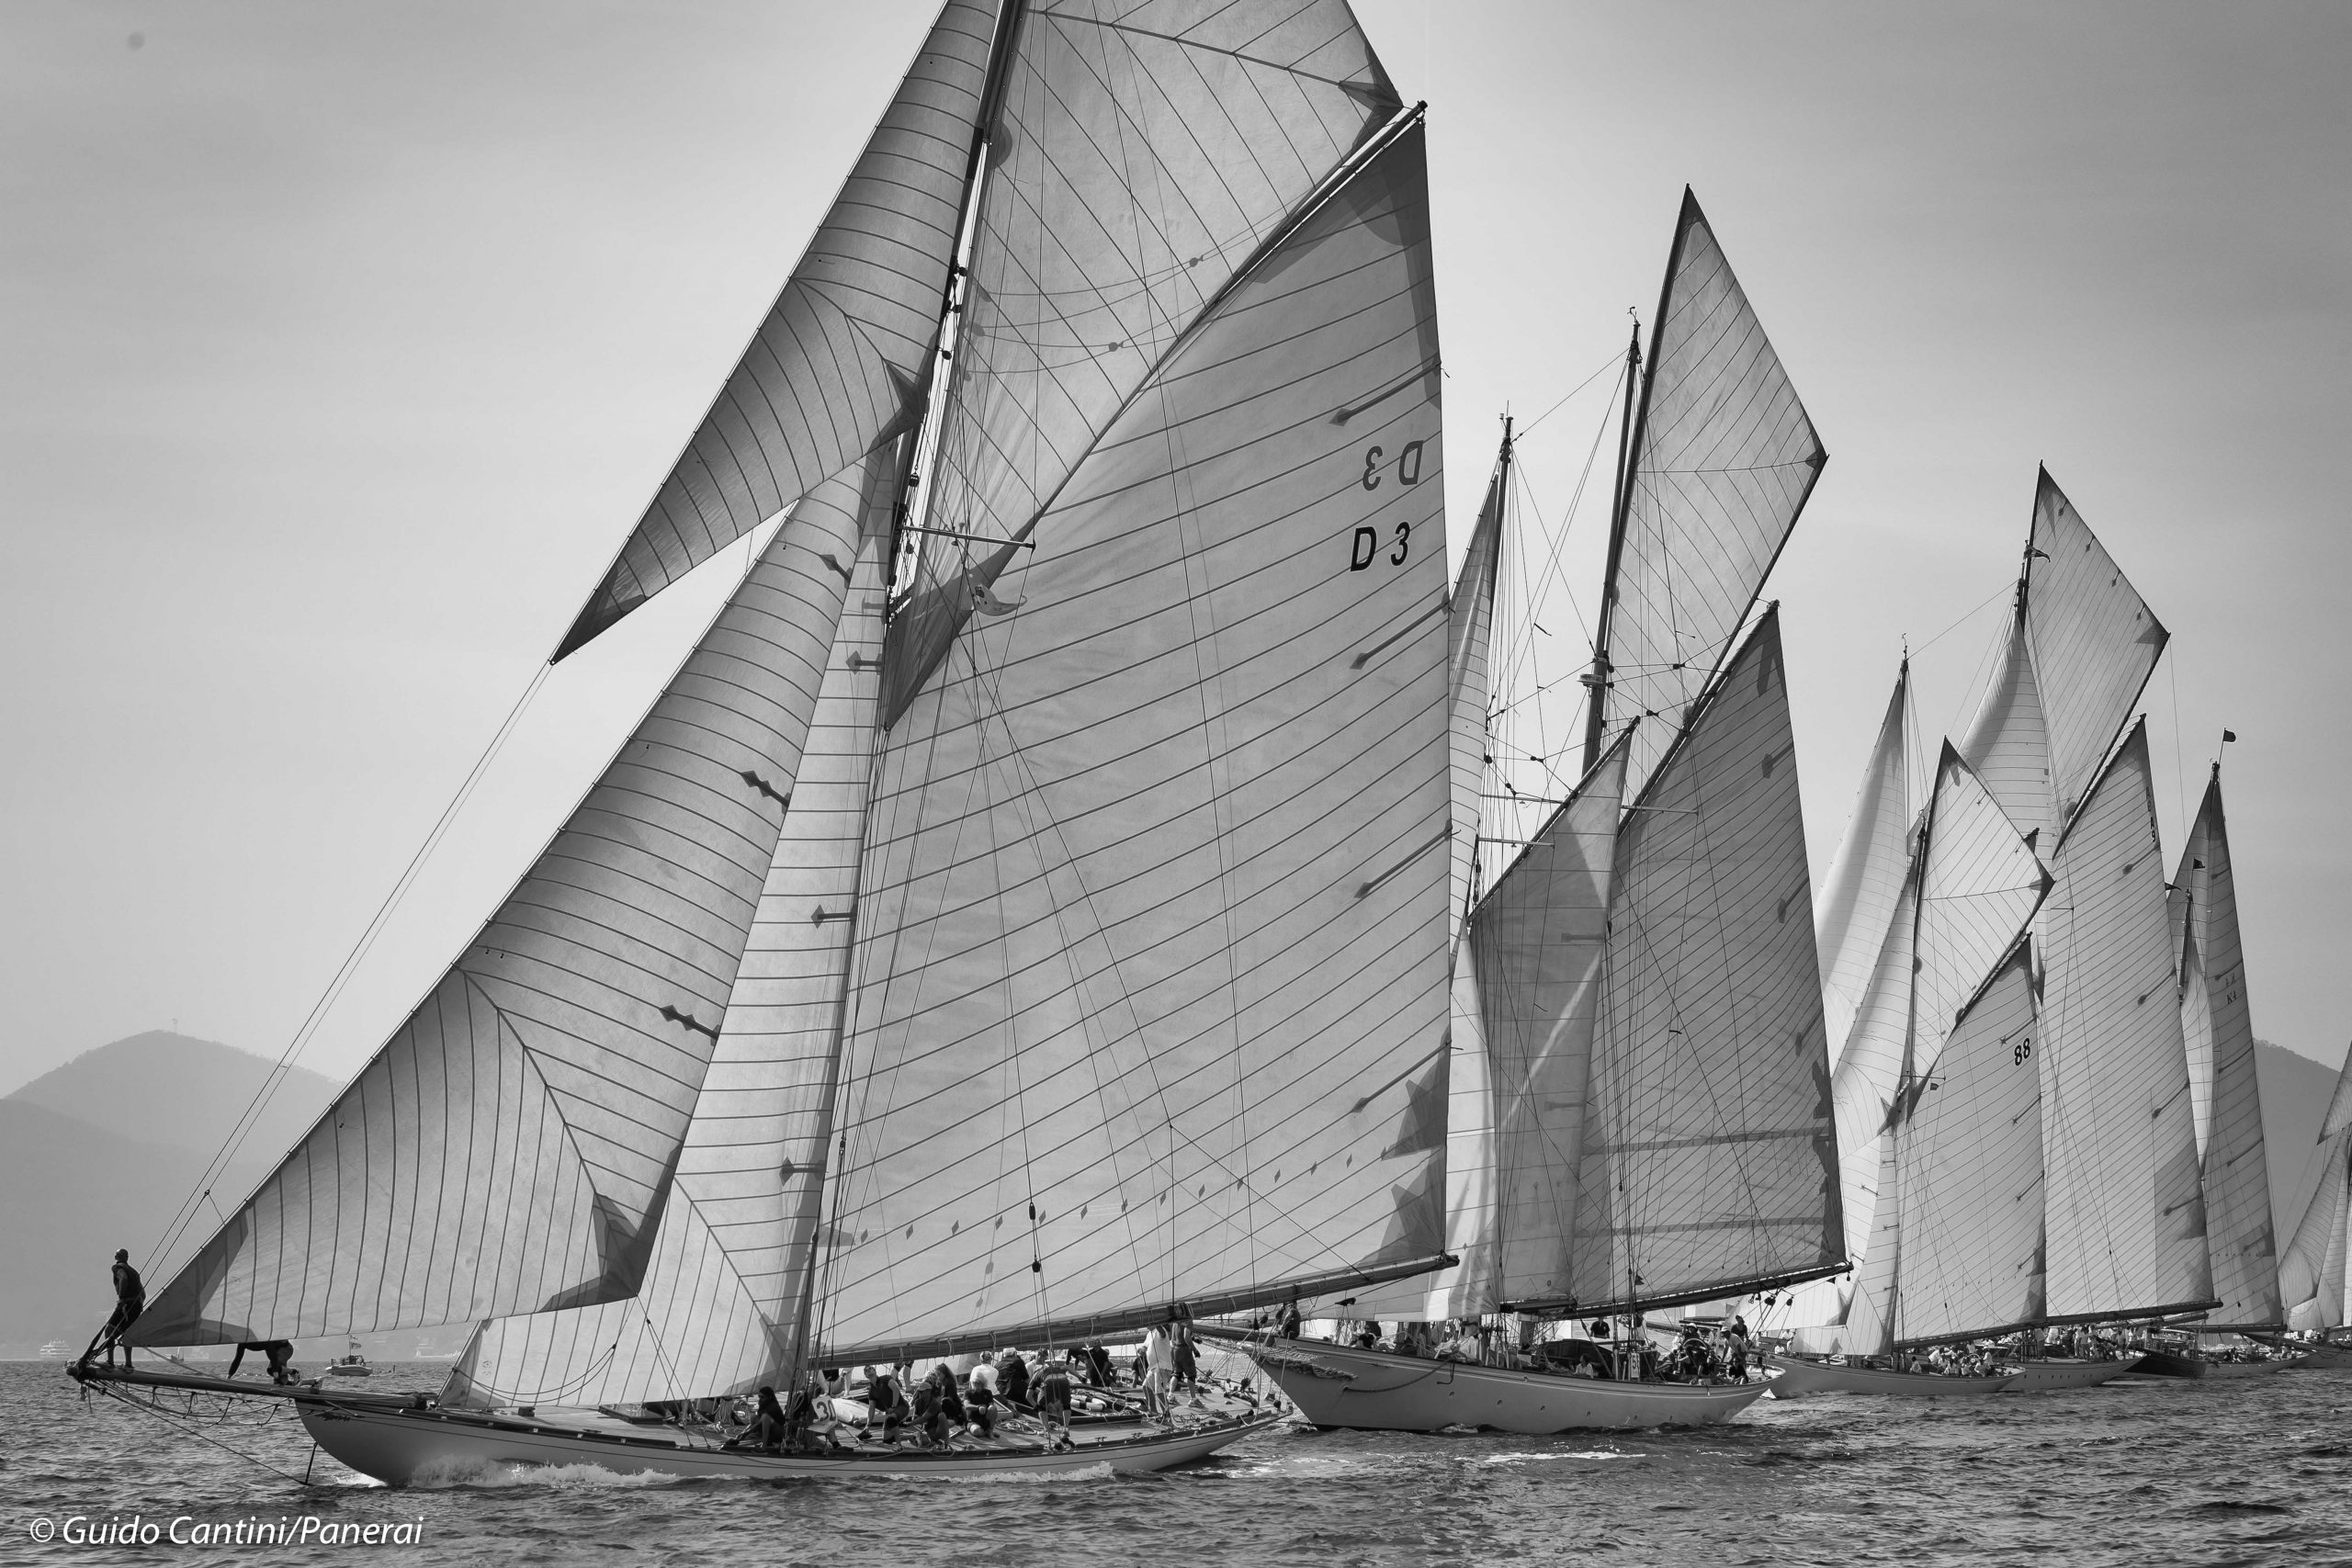 Classic-yachts have one day remaining